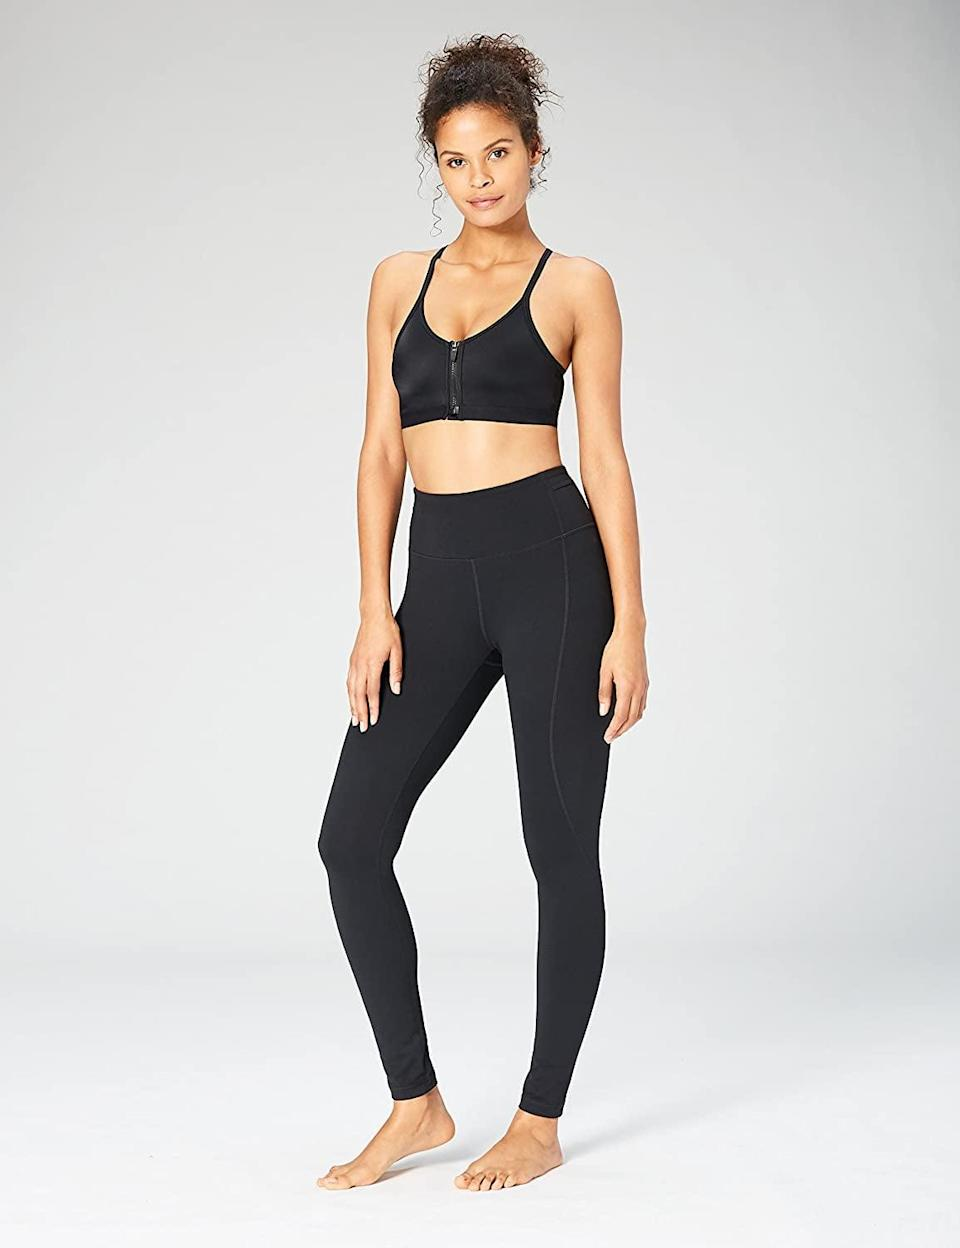 <p>Available in extended sizing, customers praise the <span>Core 10 Women's Build Your Own Yoga Pant Full-Length Legging</span> ($45) because they're comfortable and warm yet breathable. These leggings are always sold out, so get your hands on them while you can!</p>